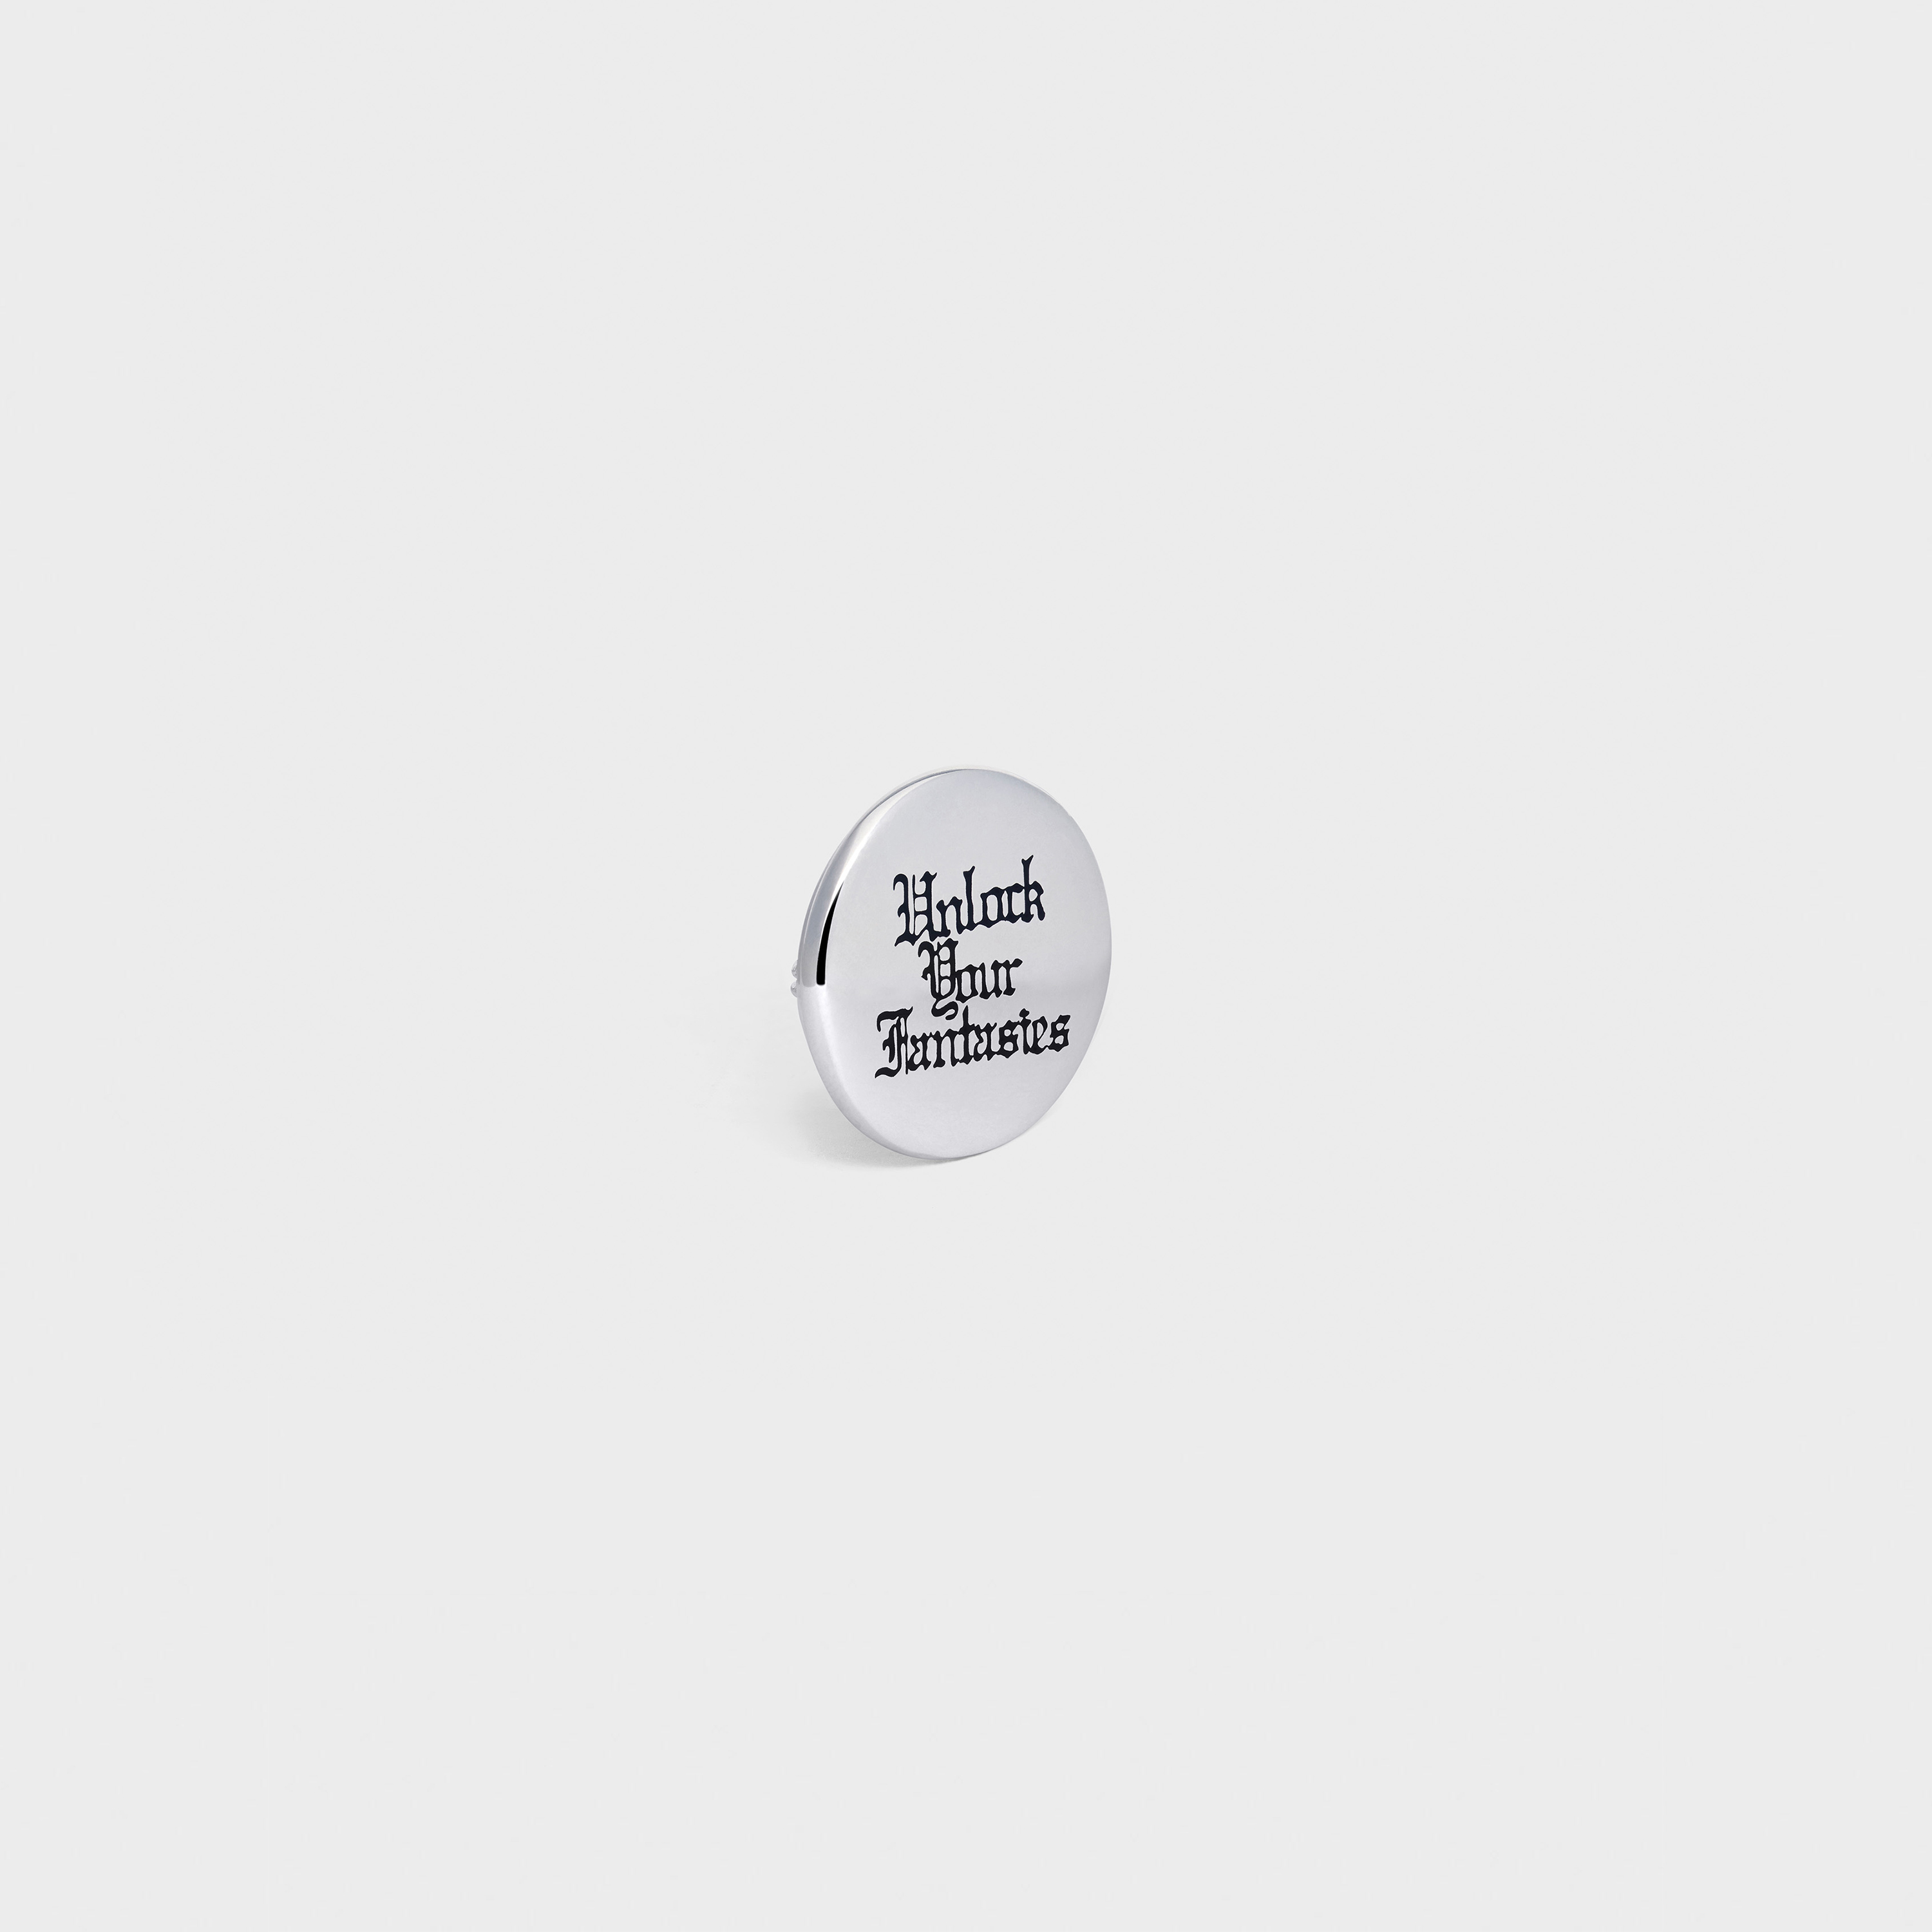 Unlock Your Fantasies Small Badge in Sterling Silver and Enamel | CELINE